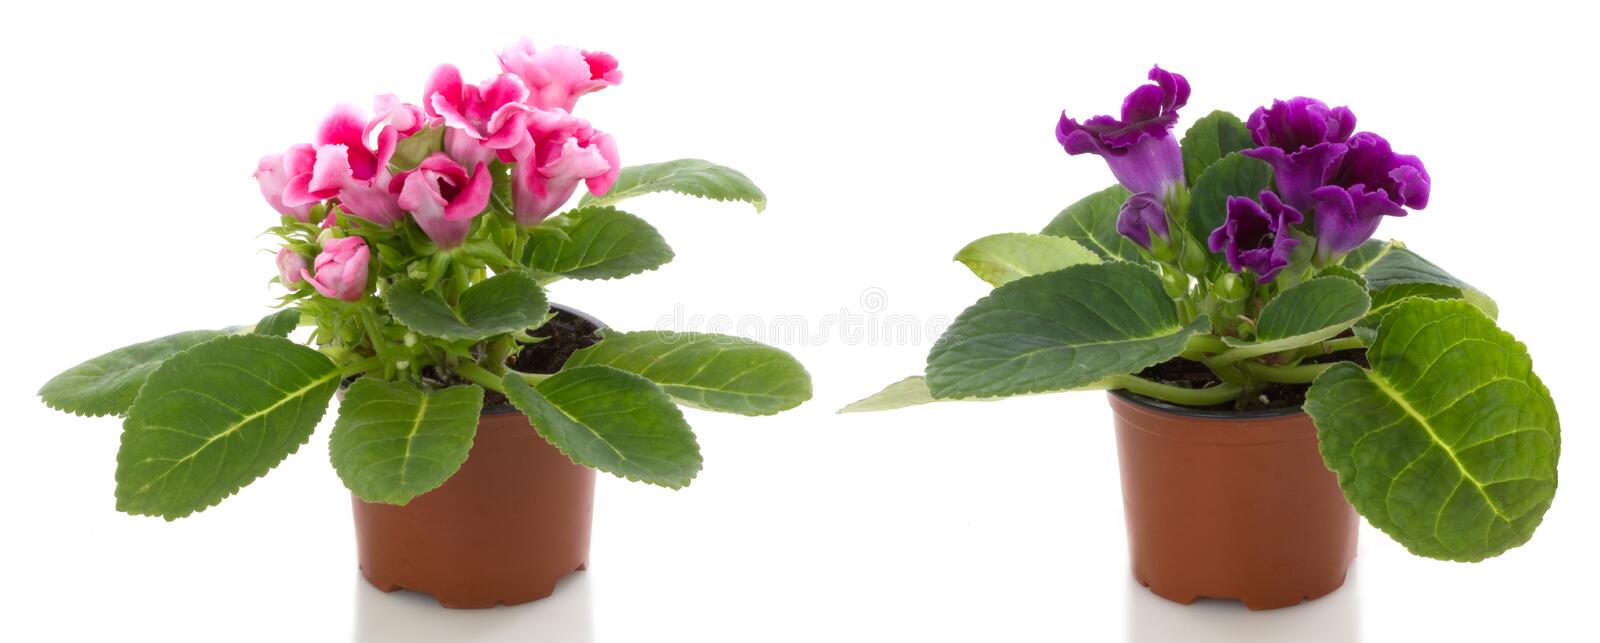 Download Potted flowers stock photo. Image of flora, card, birthday - 17370656